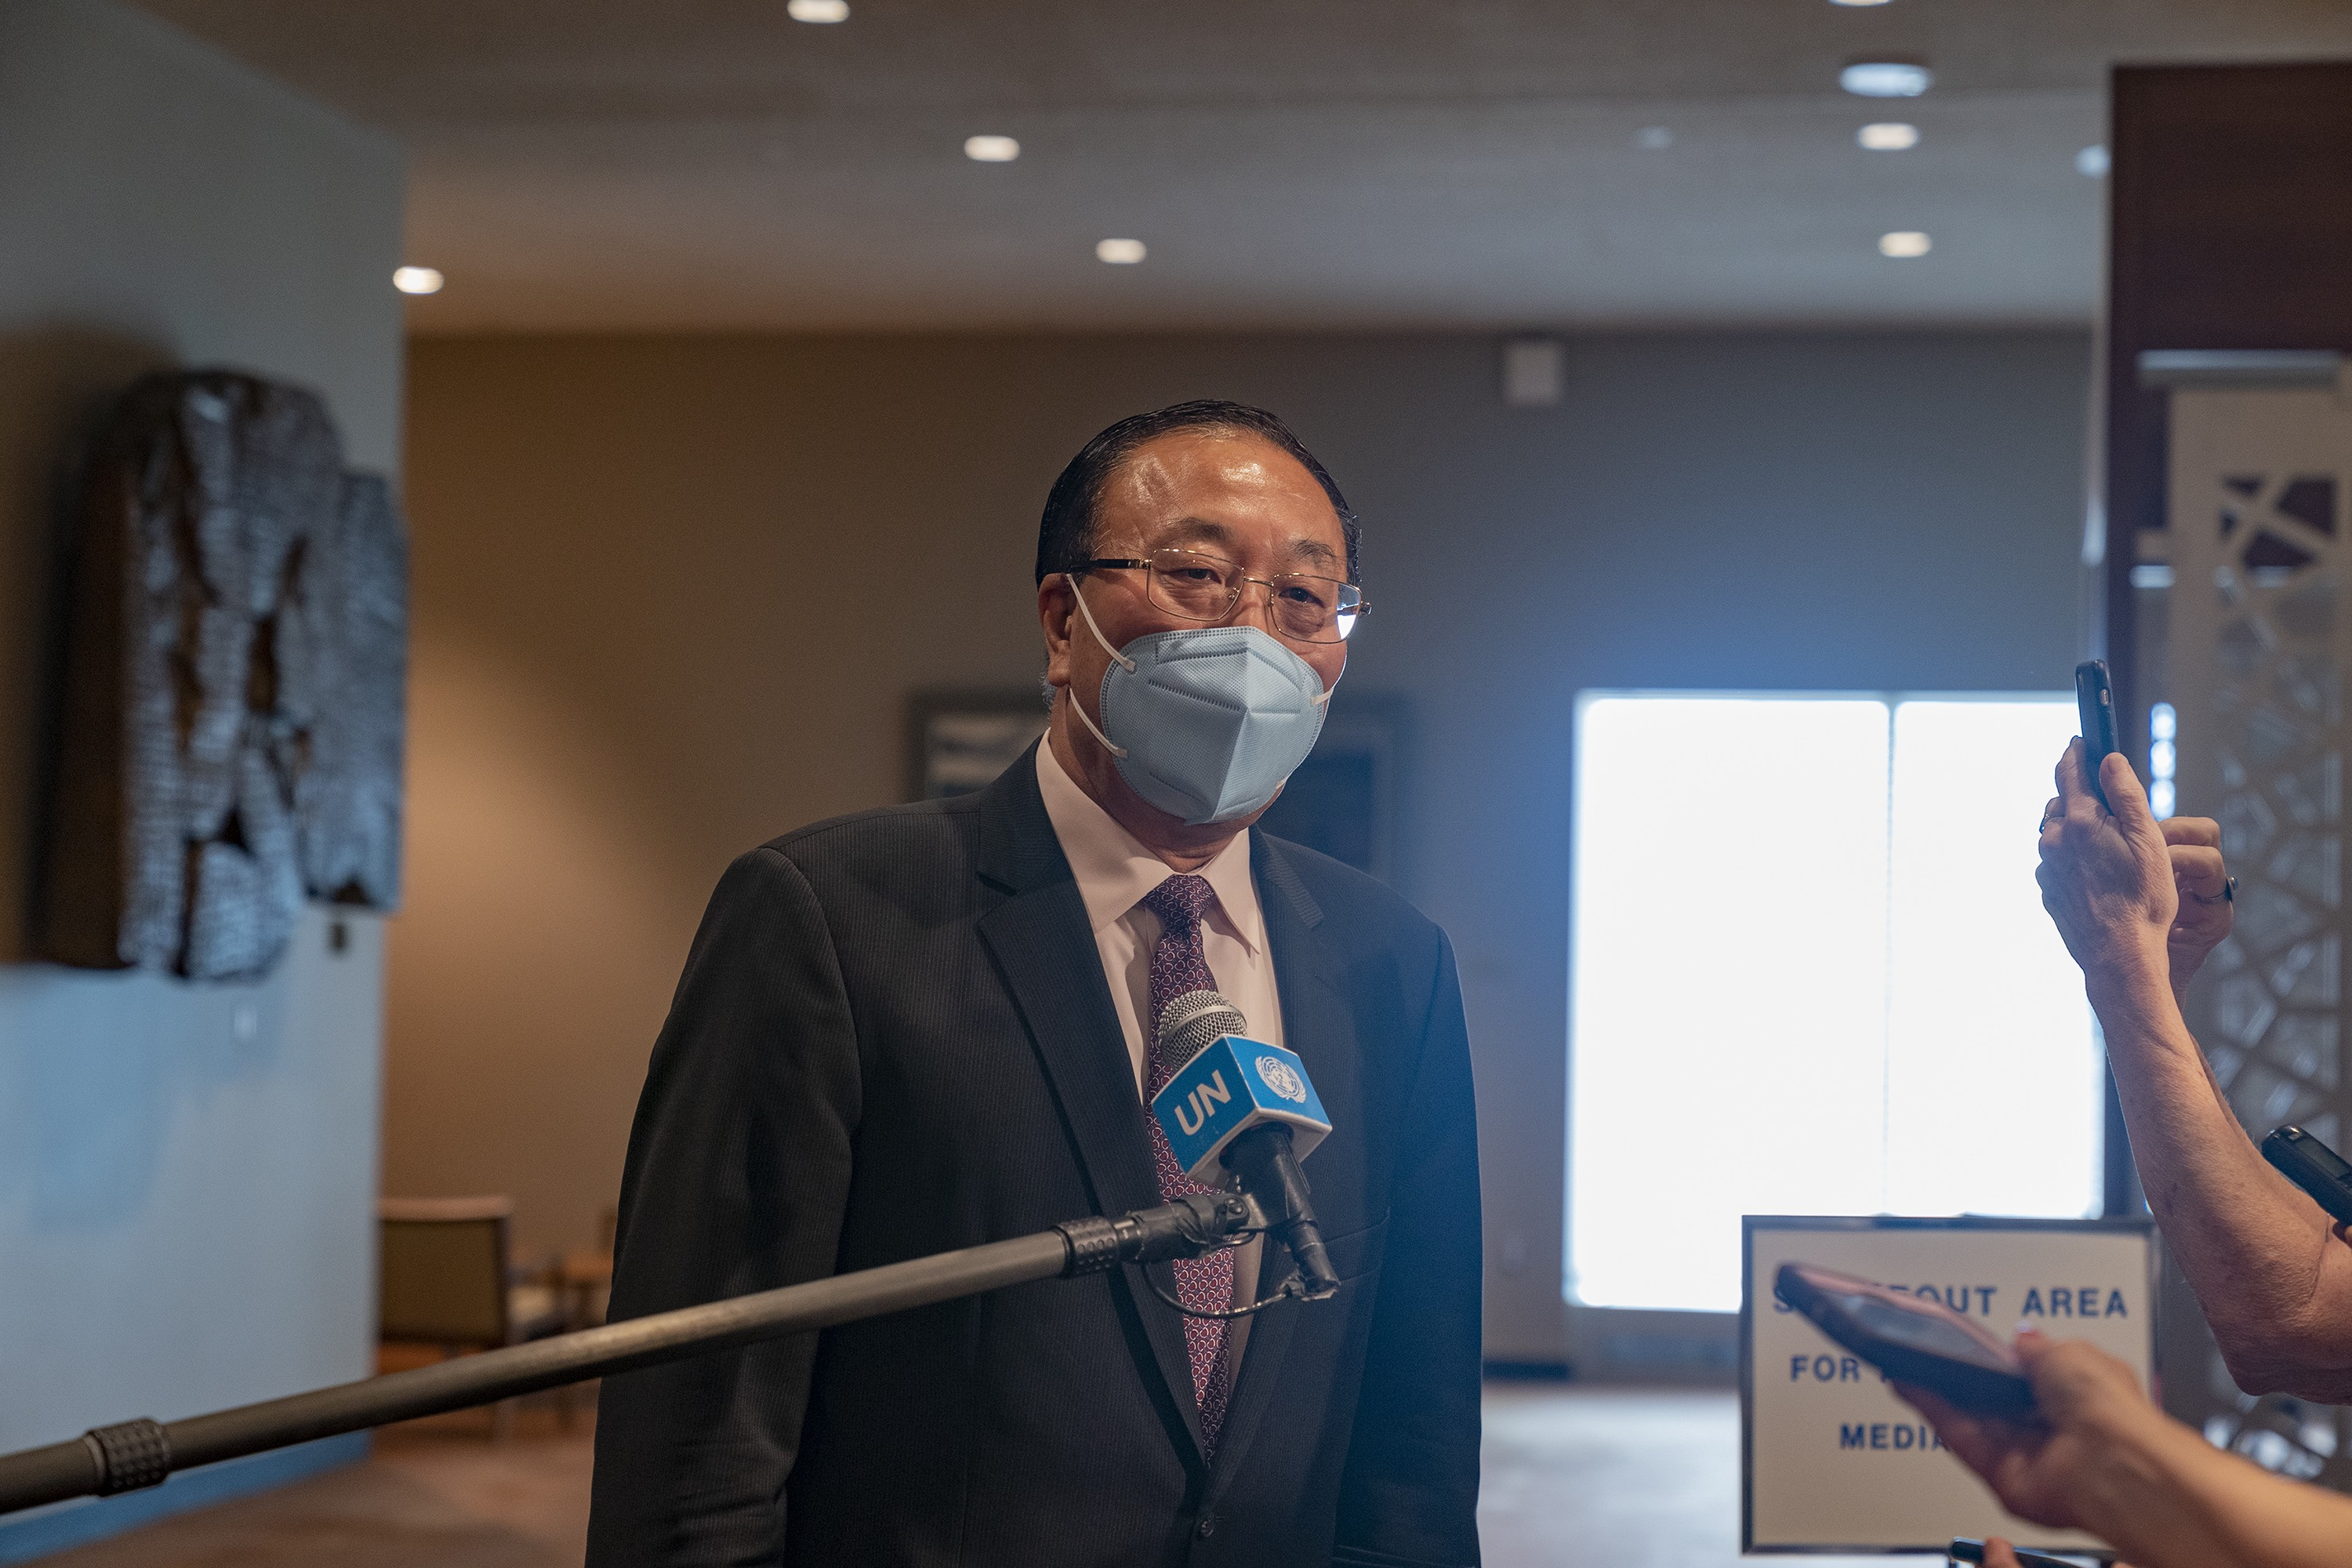 China's Permanent Representative to the UN Ambassador Zhang Jun talks to the press in a large room while wearing a blue face mask.